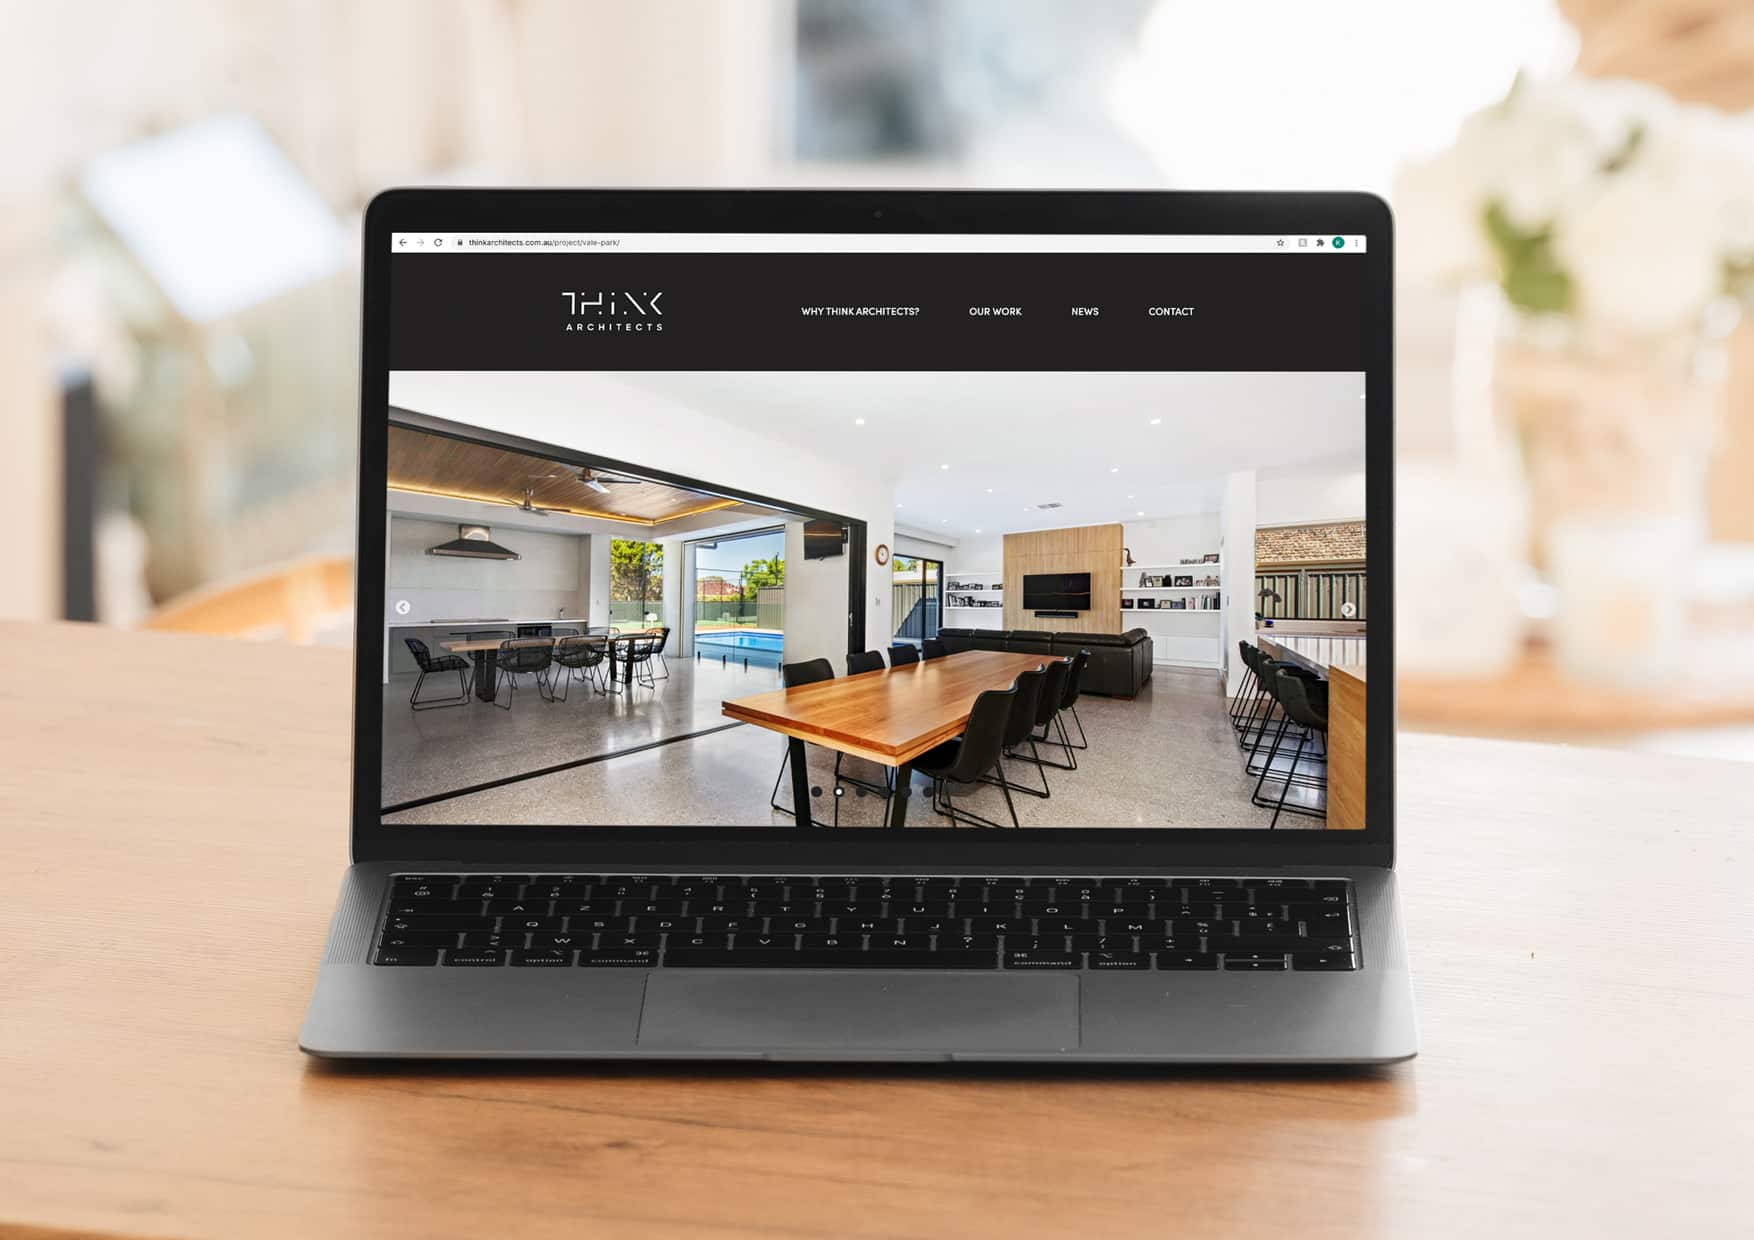 Think Architects website design by Flux Visual Communication, Adelaide